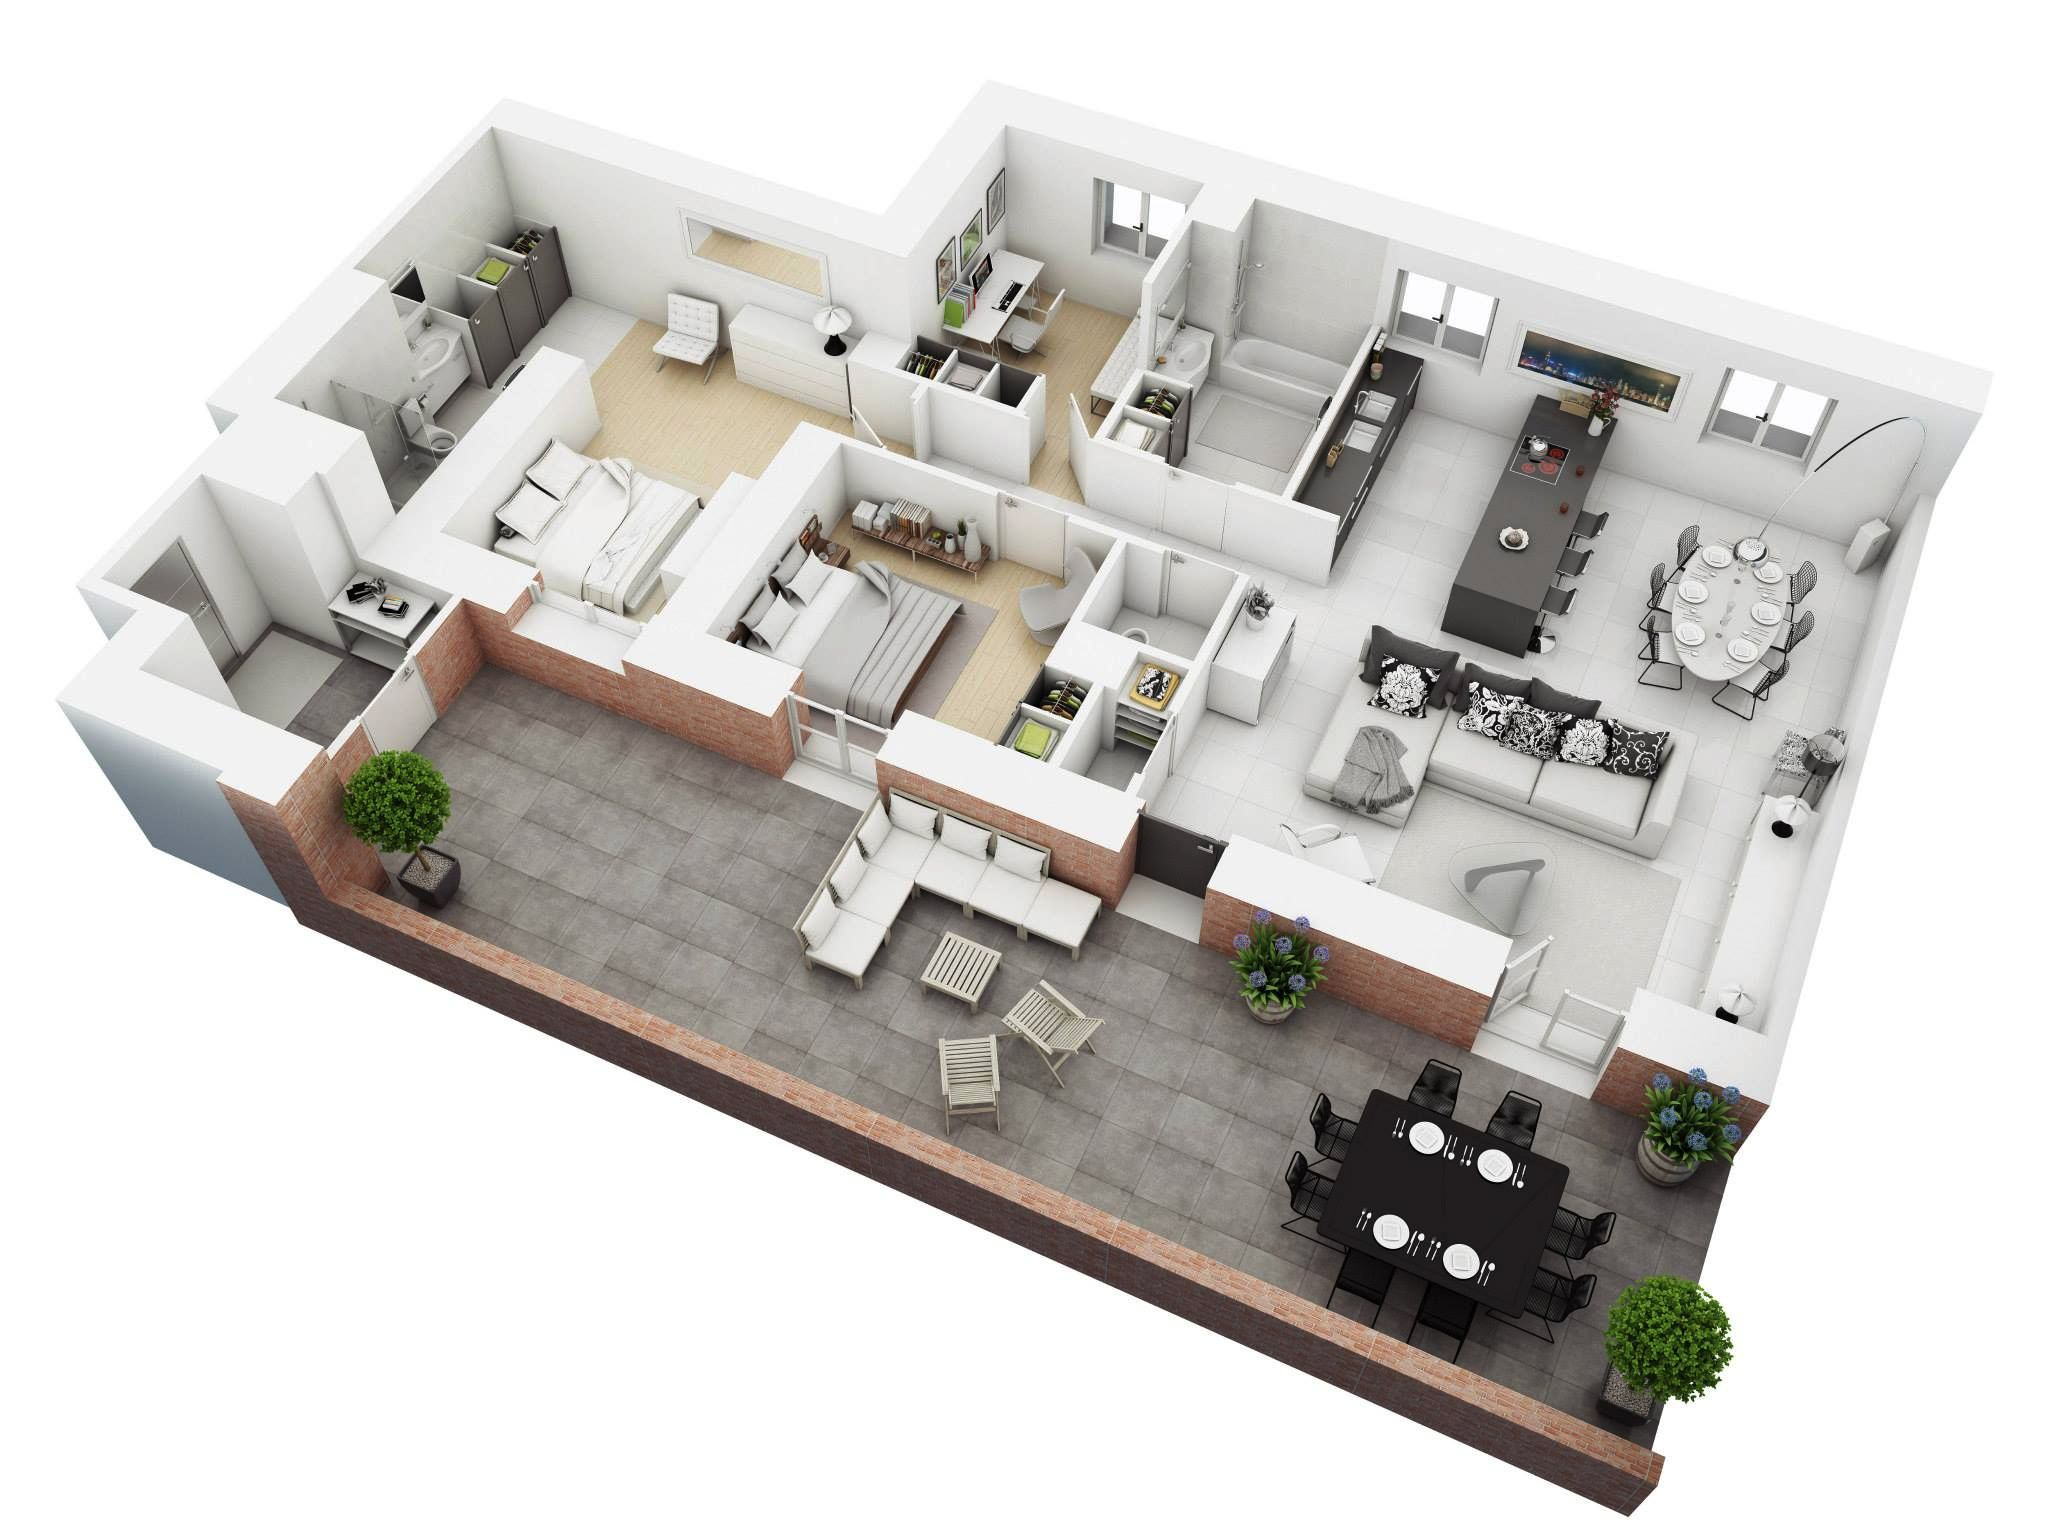 3 bedroom floor plans Understanding 3D Floor Plans